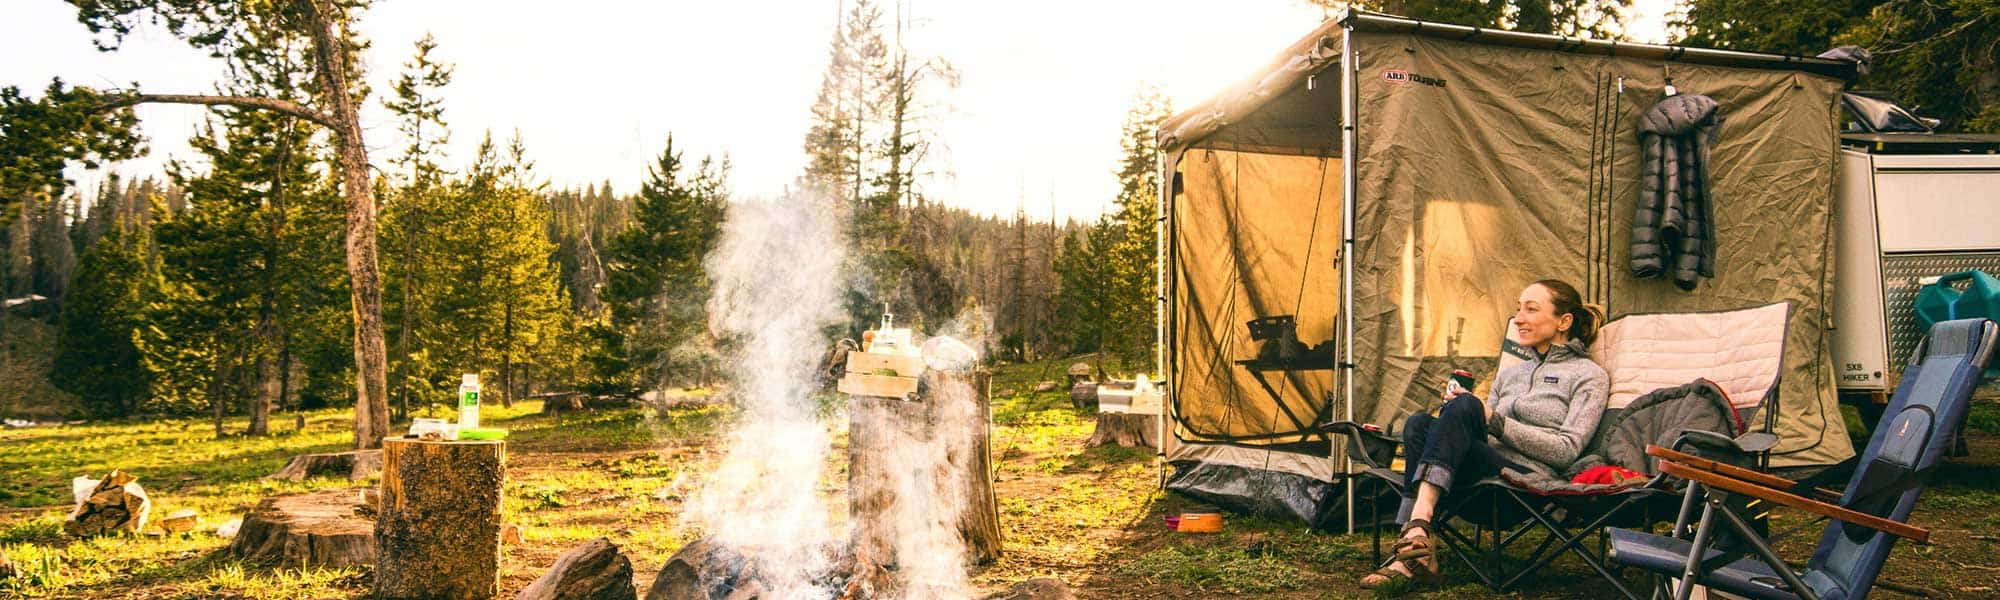 best-camping-shelters-for-rv-van-car-and-tent-campers